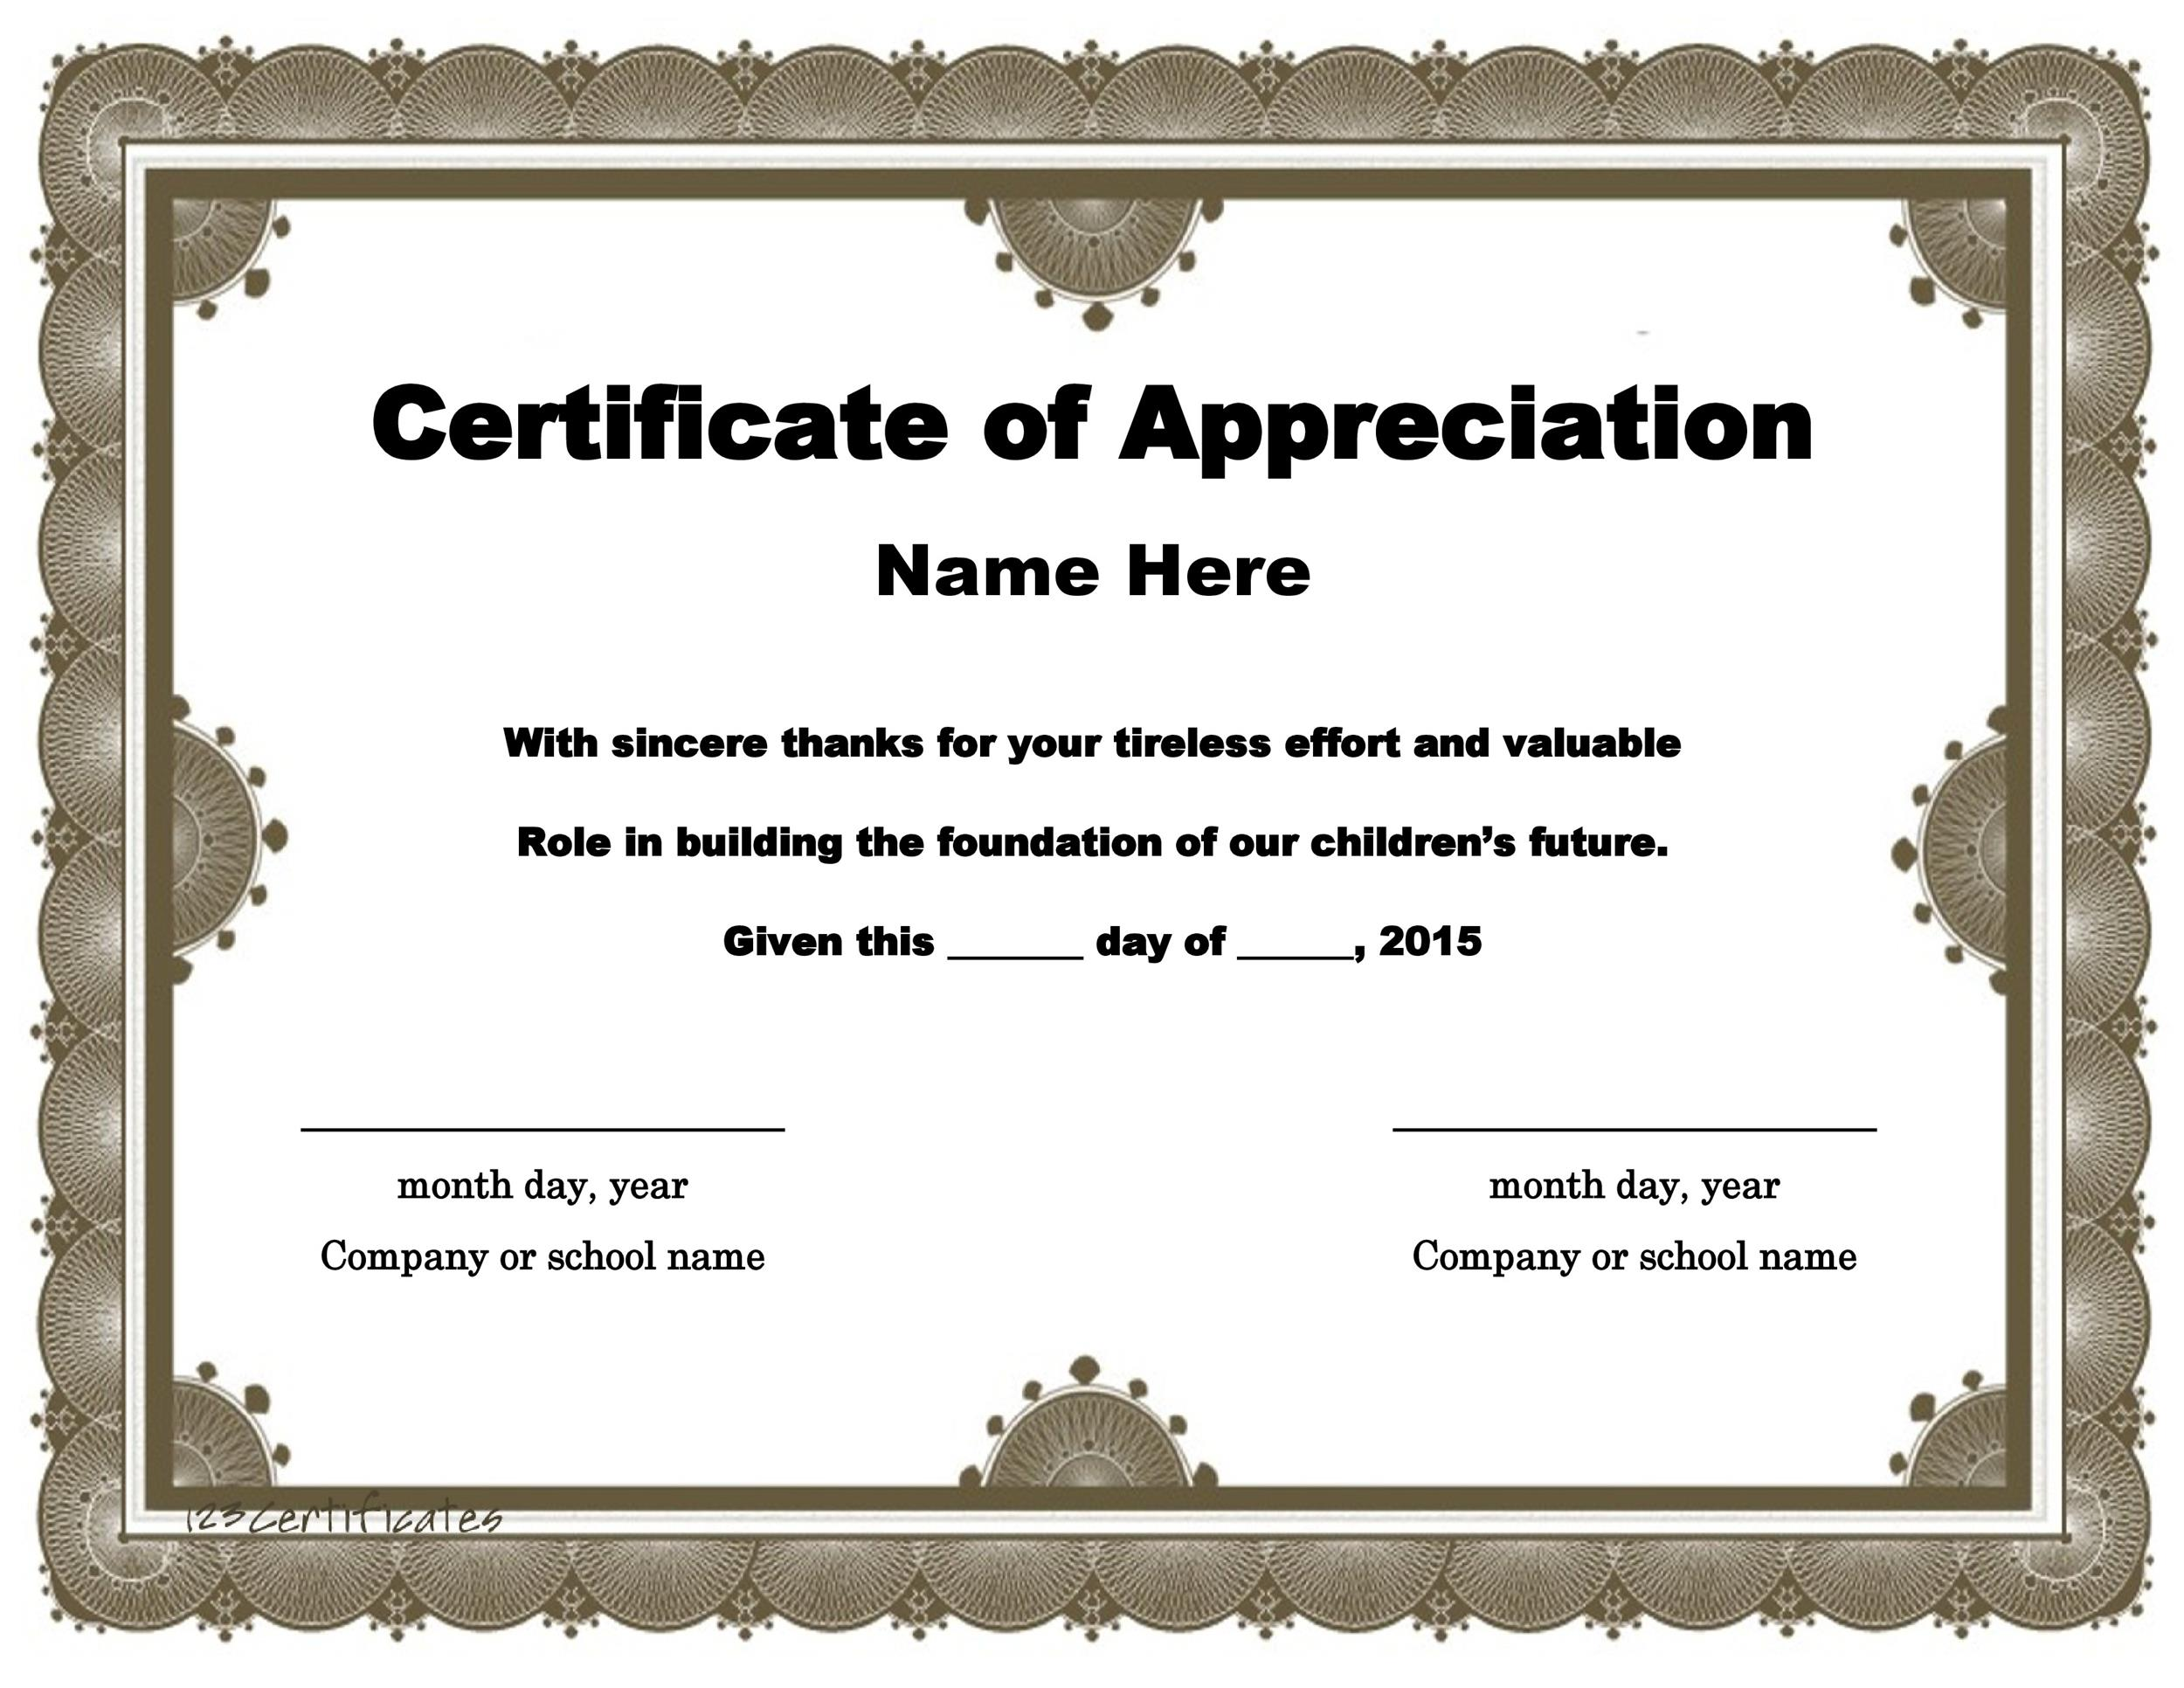 Printable Certificate Of Appreciation 03  Free Blank Printable Certificates